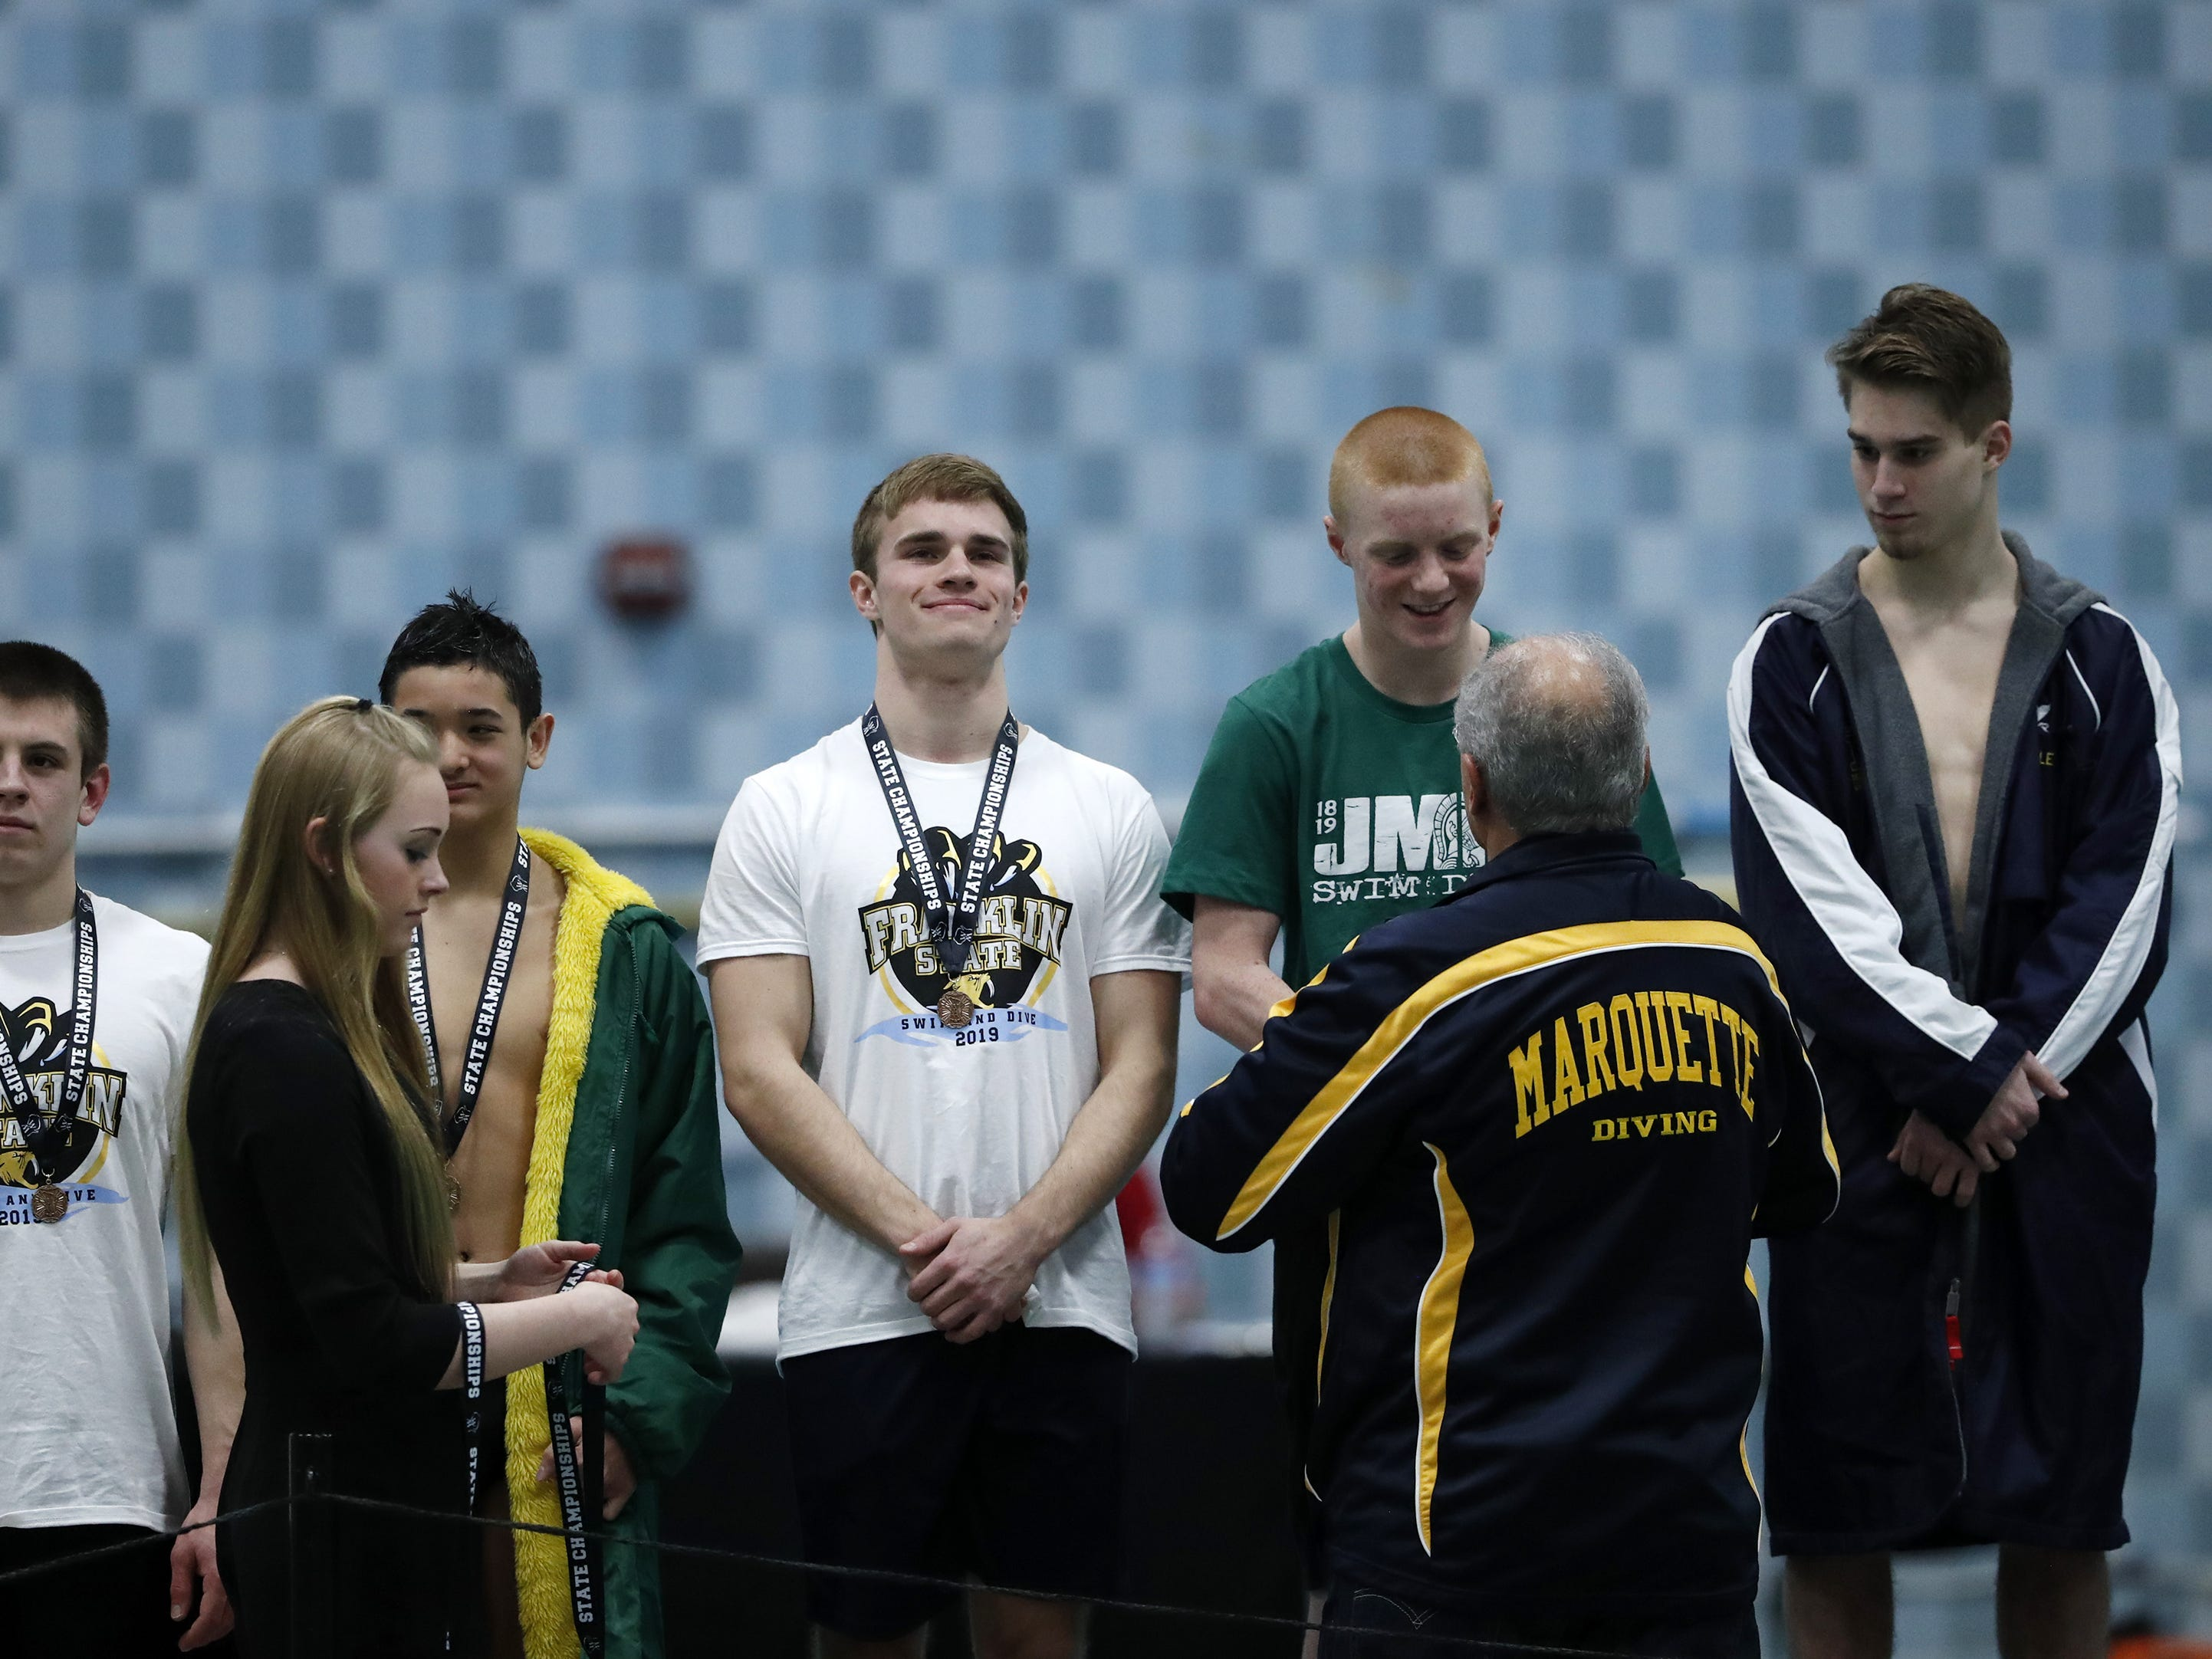 Franklin's Jared Kleczka (center) stands after receiving 4th place during the Division 1 2019 State Boys Swimming and Diving Championships Saturday, Feb. 16, 2019, at the UW Natatorium in Madison, Wis. Danny Damiani/USA TODAY NETWORK-Wisconsin